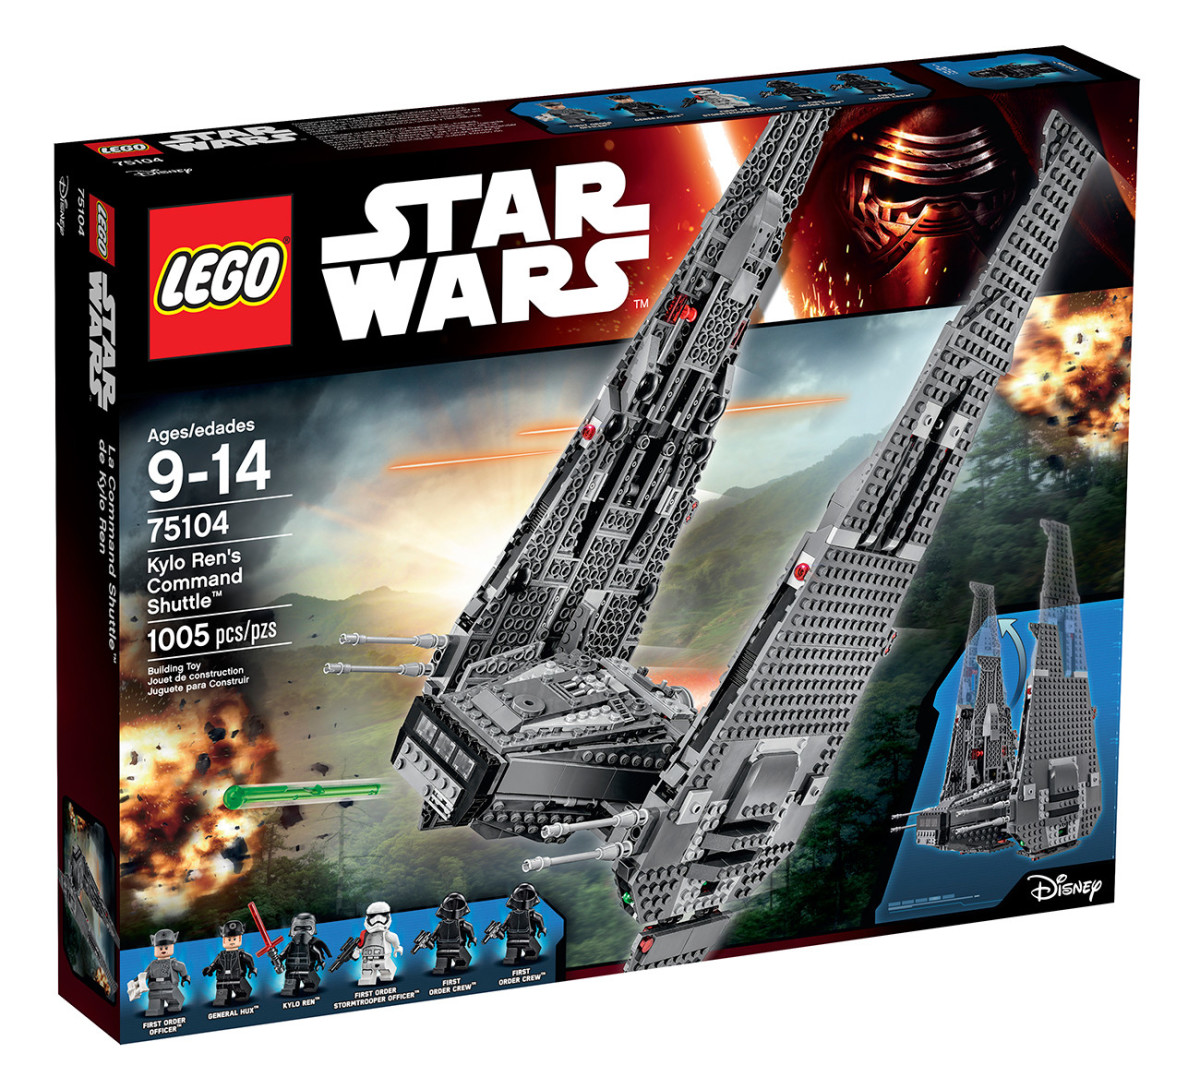 lego-unveils-star-wars-the-force-awakens-sets-06